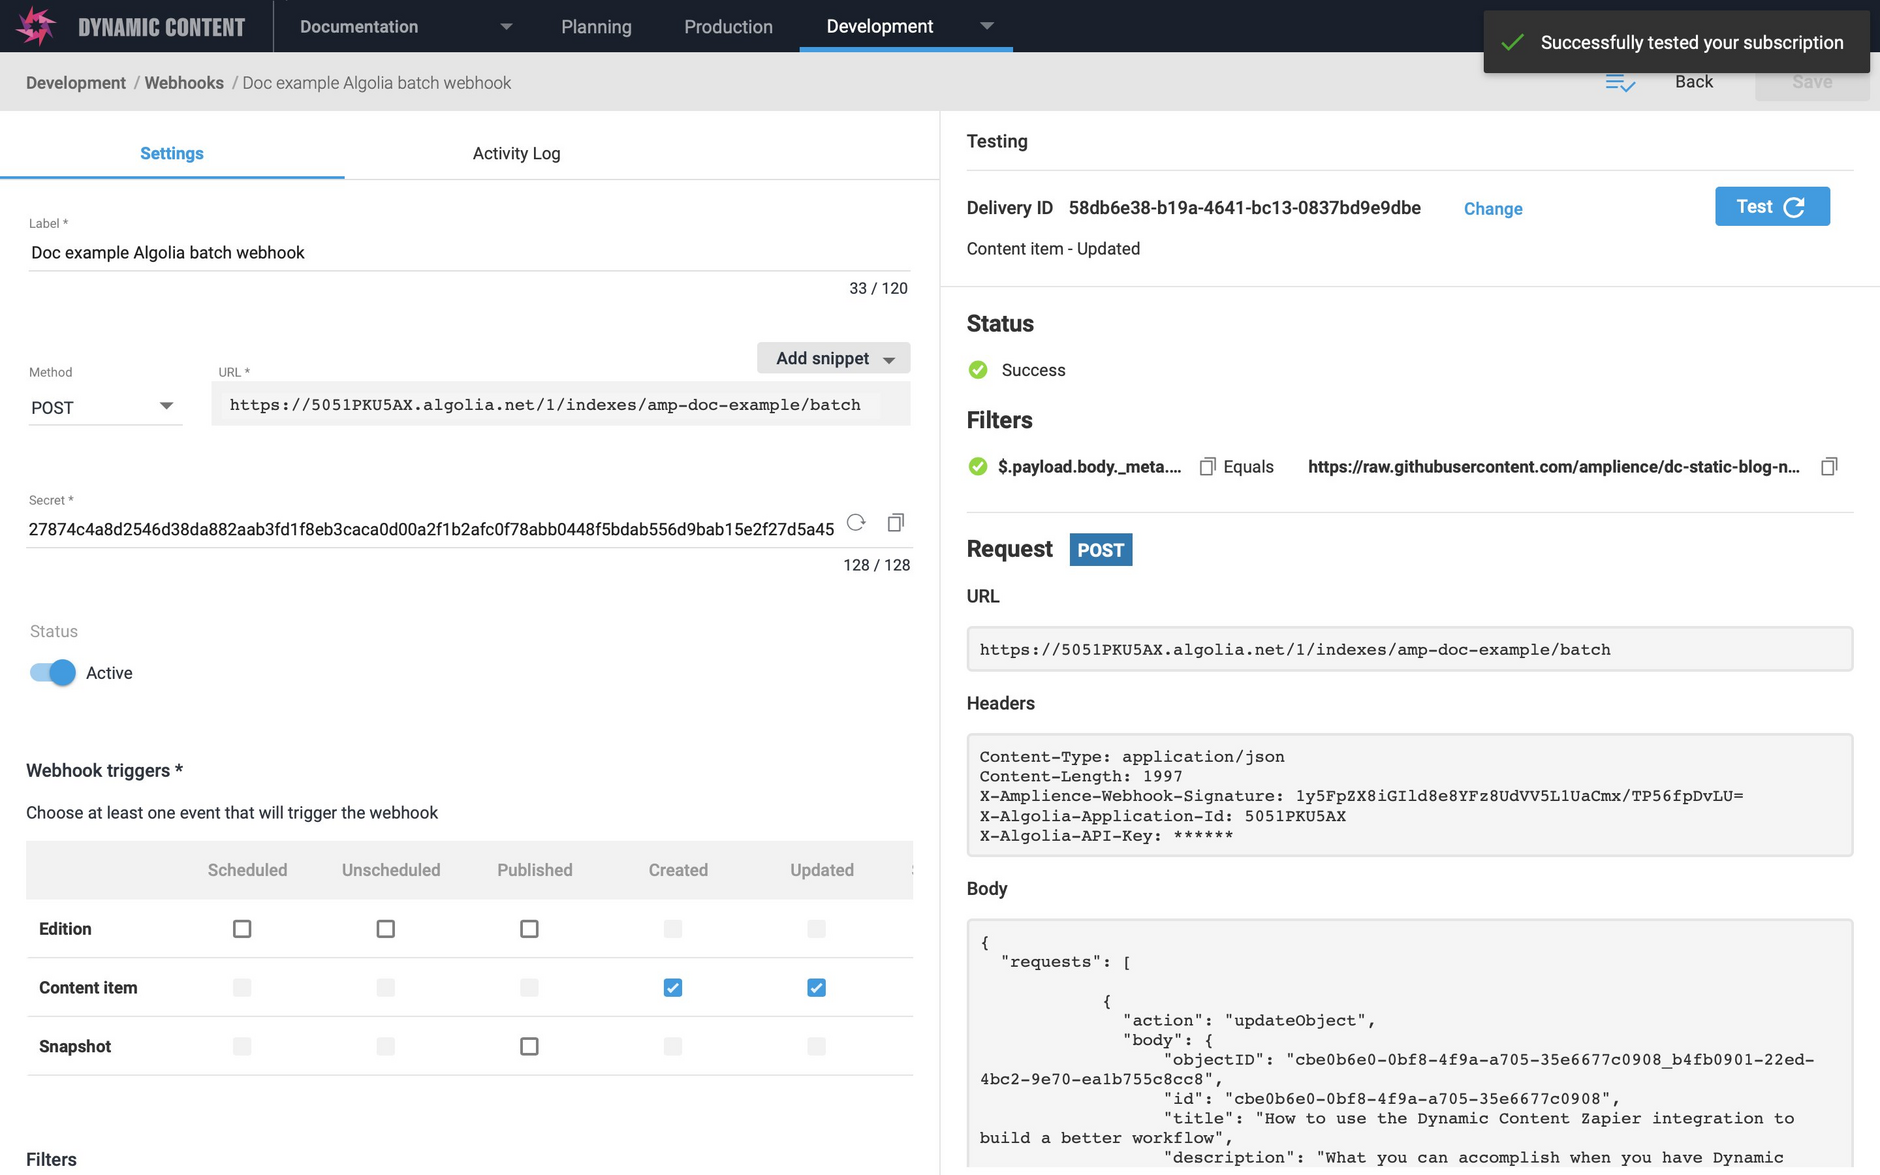 The webhook details including the custom payload to request that the Algolia API creates or updates multiple records